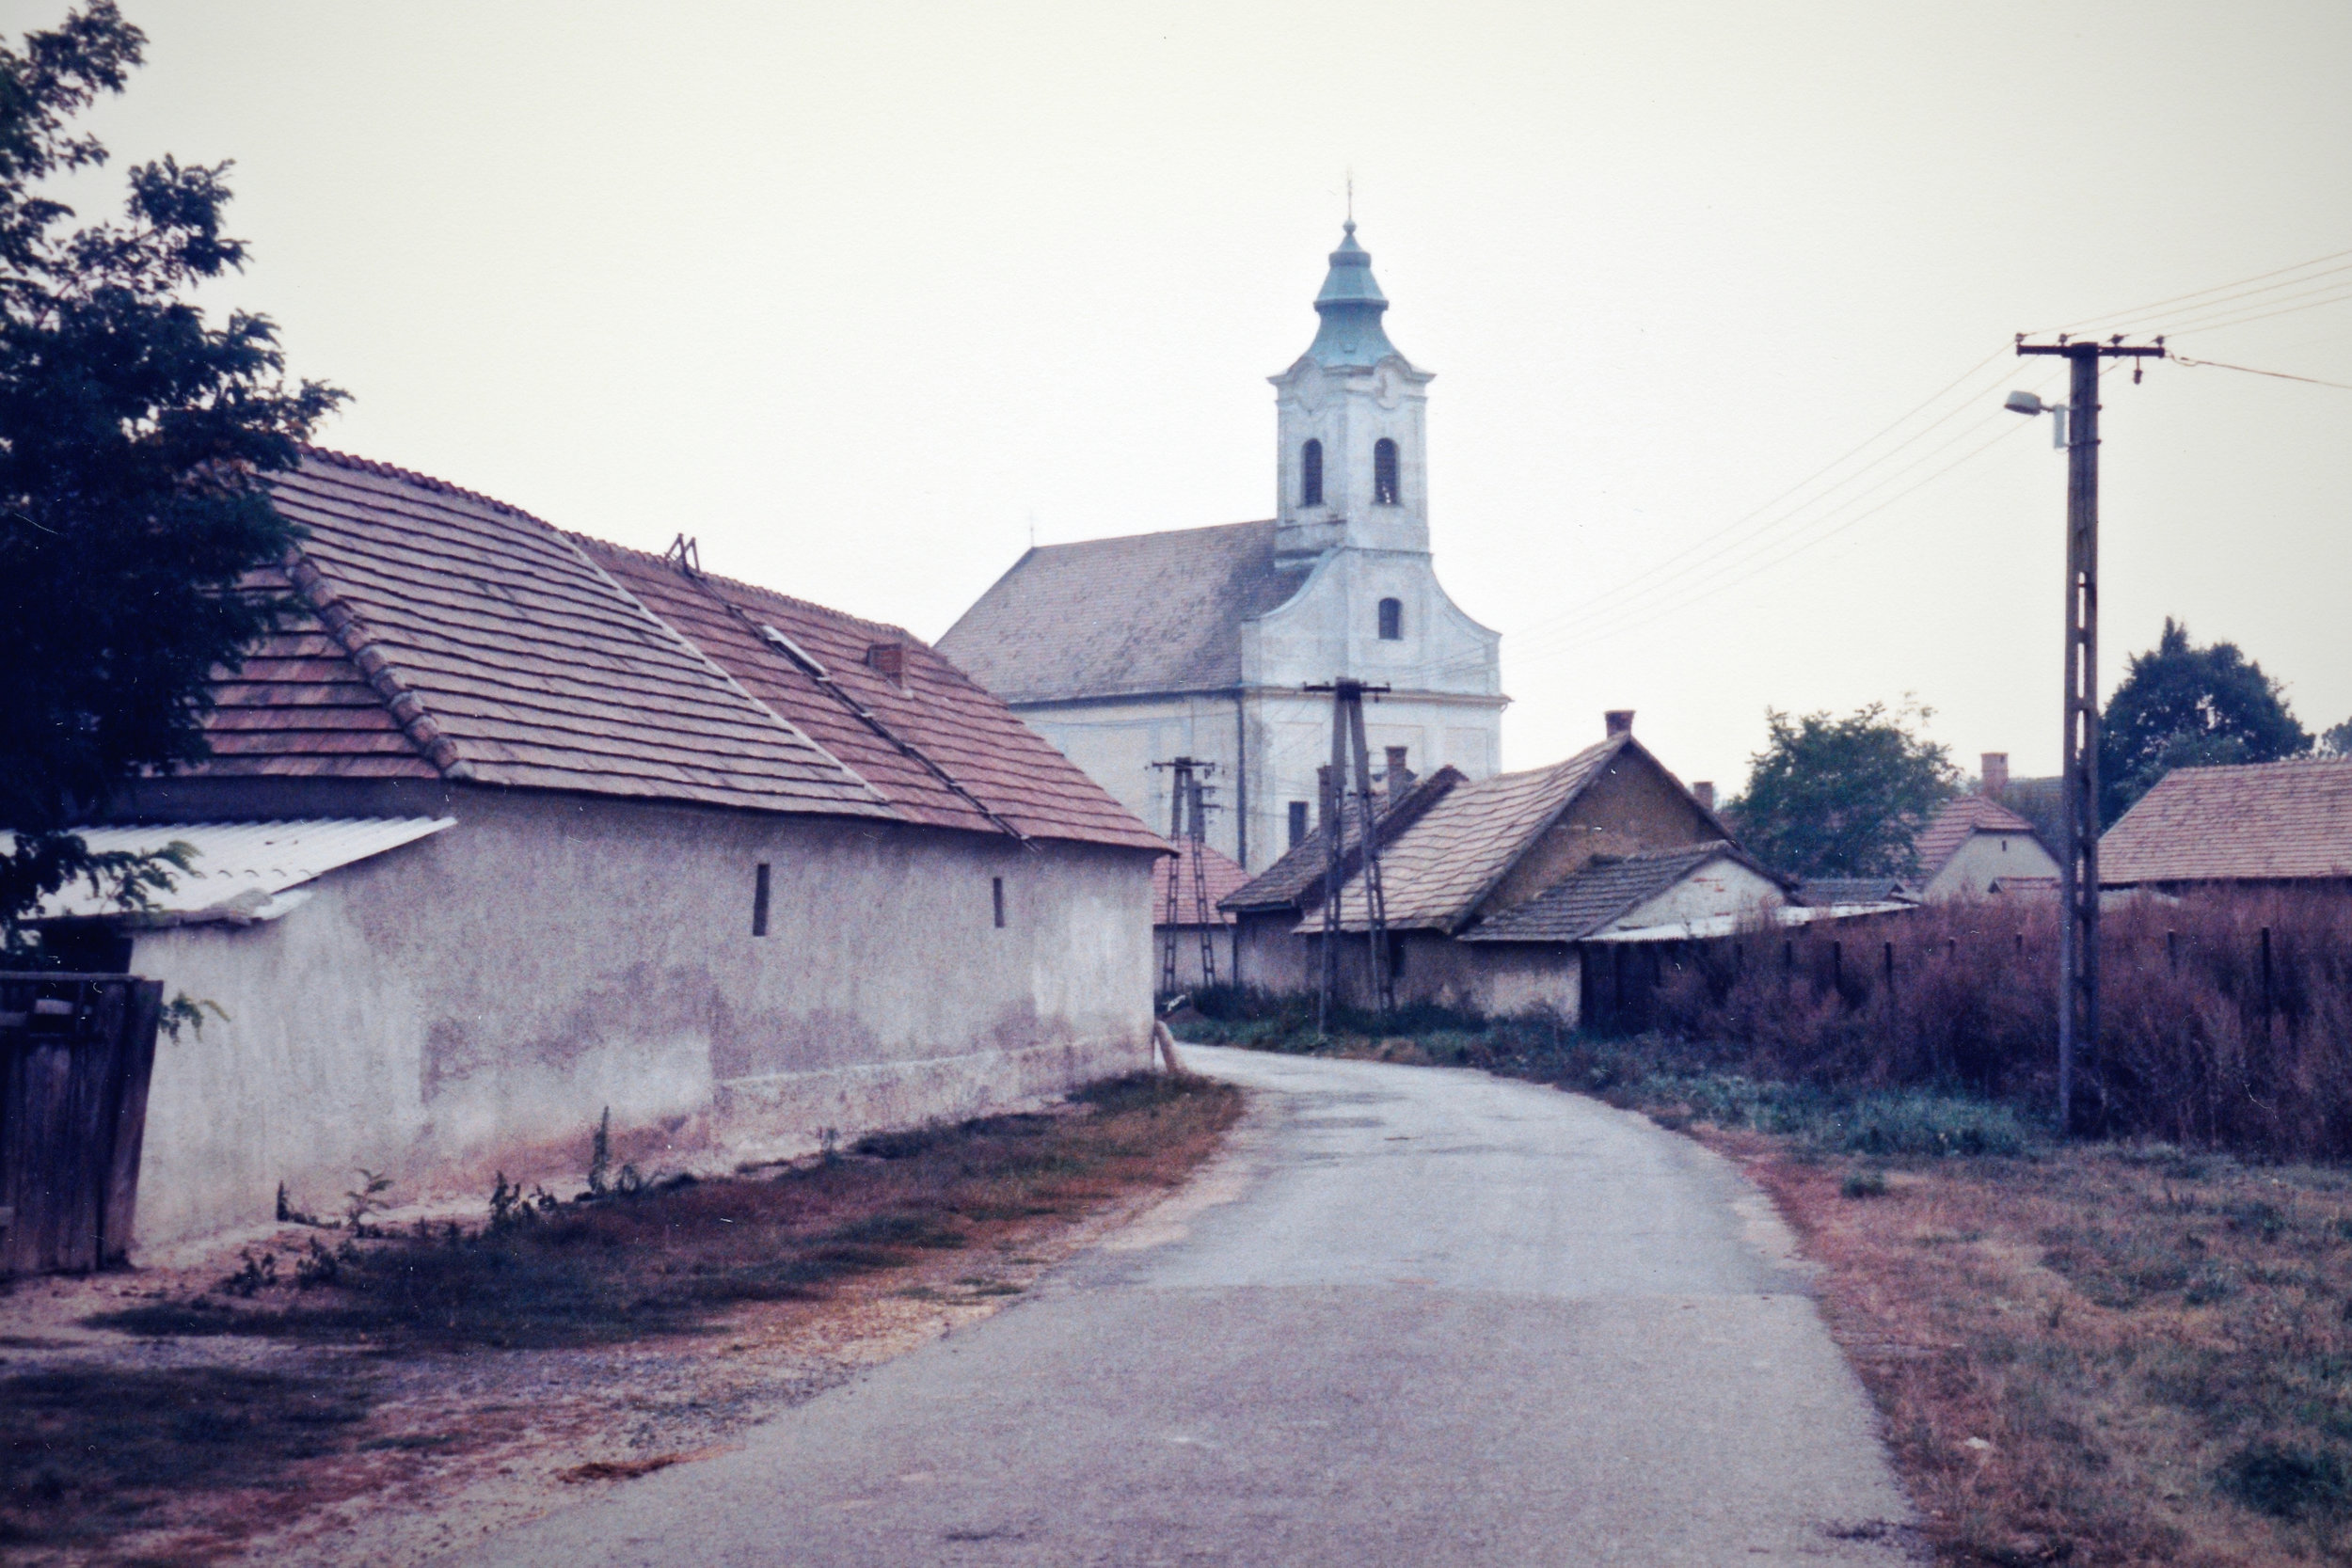 Back lane to the church